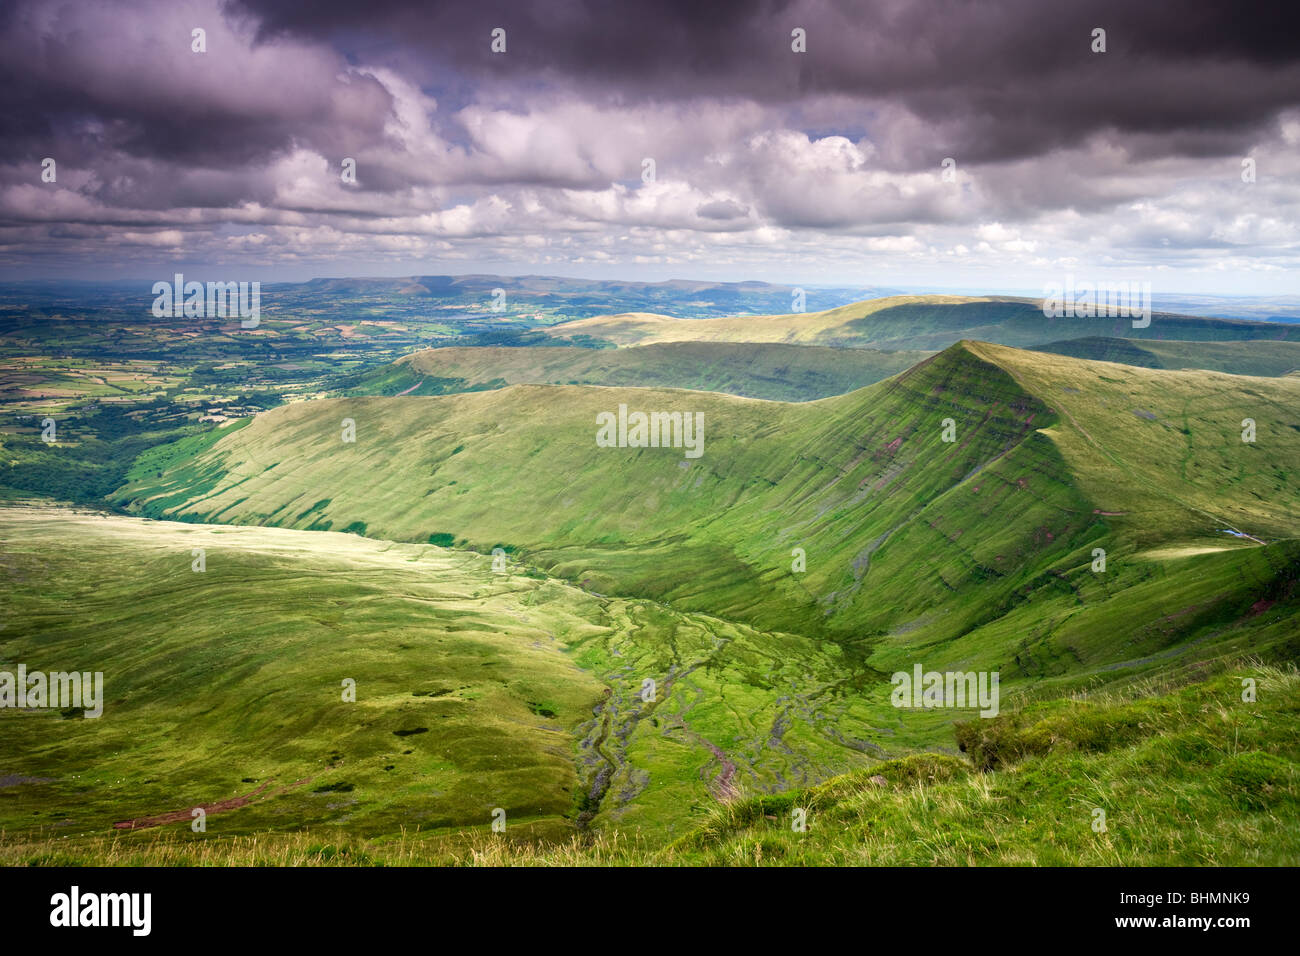 Cribyn vu de Pen-y-Fan, la plus haute montagne dans le parc national de Brecon Beacons, Powys, Wales, UK. L'été Photo Stock